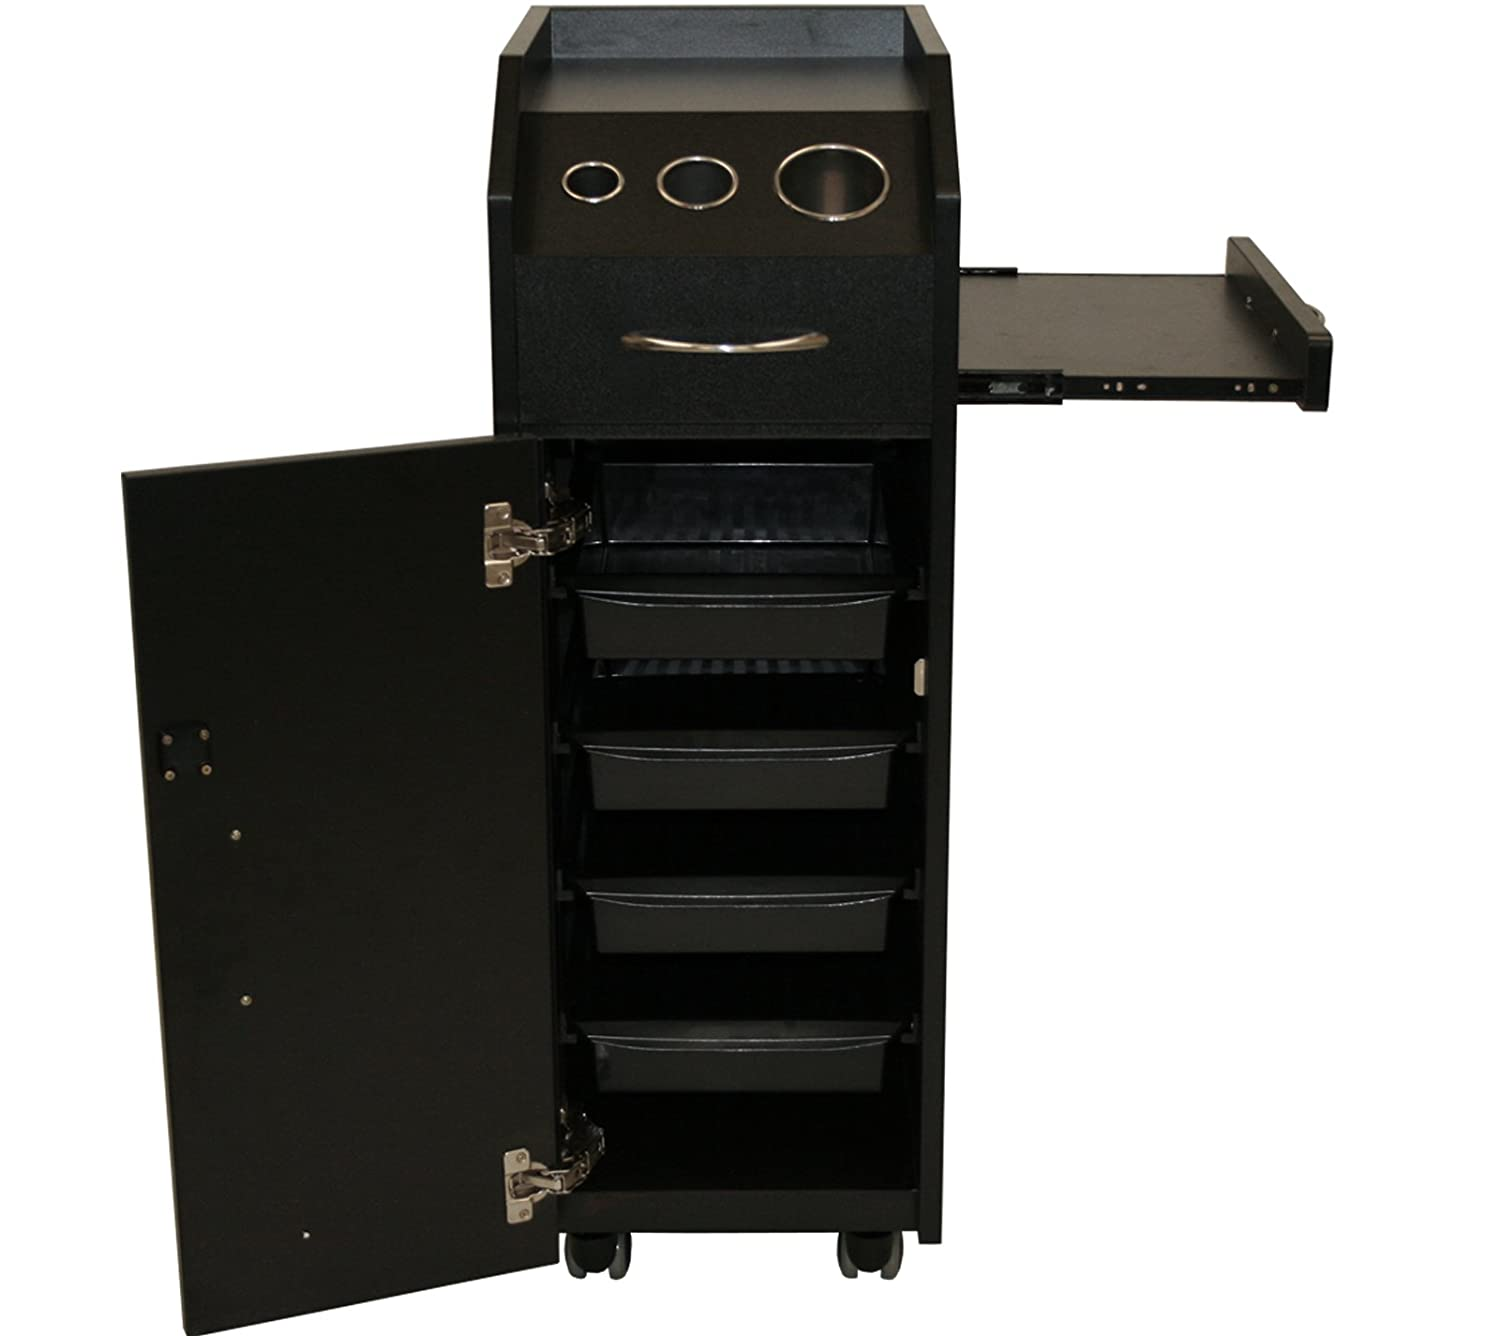 LCL Beauty Locking 4 Drawer Rolling Workstation Trolley with Tool Holders Nesting Utility Shelf